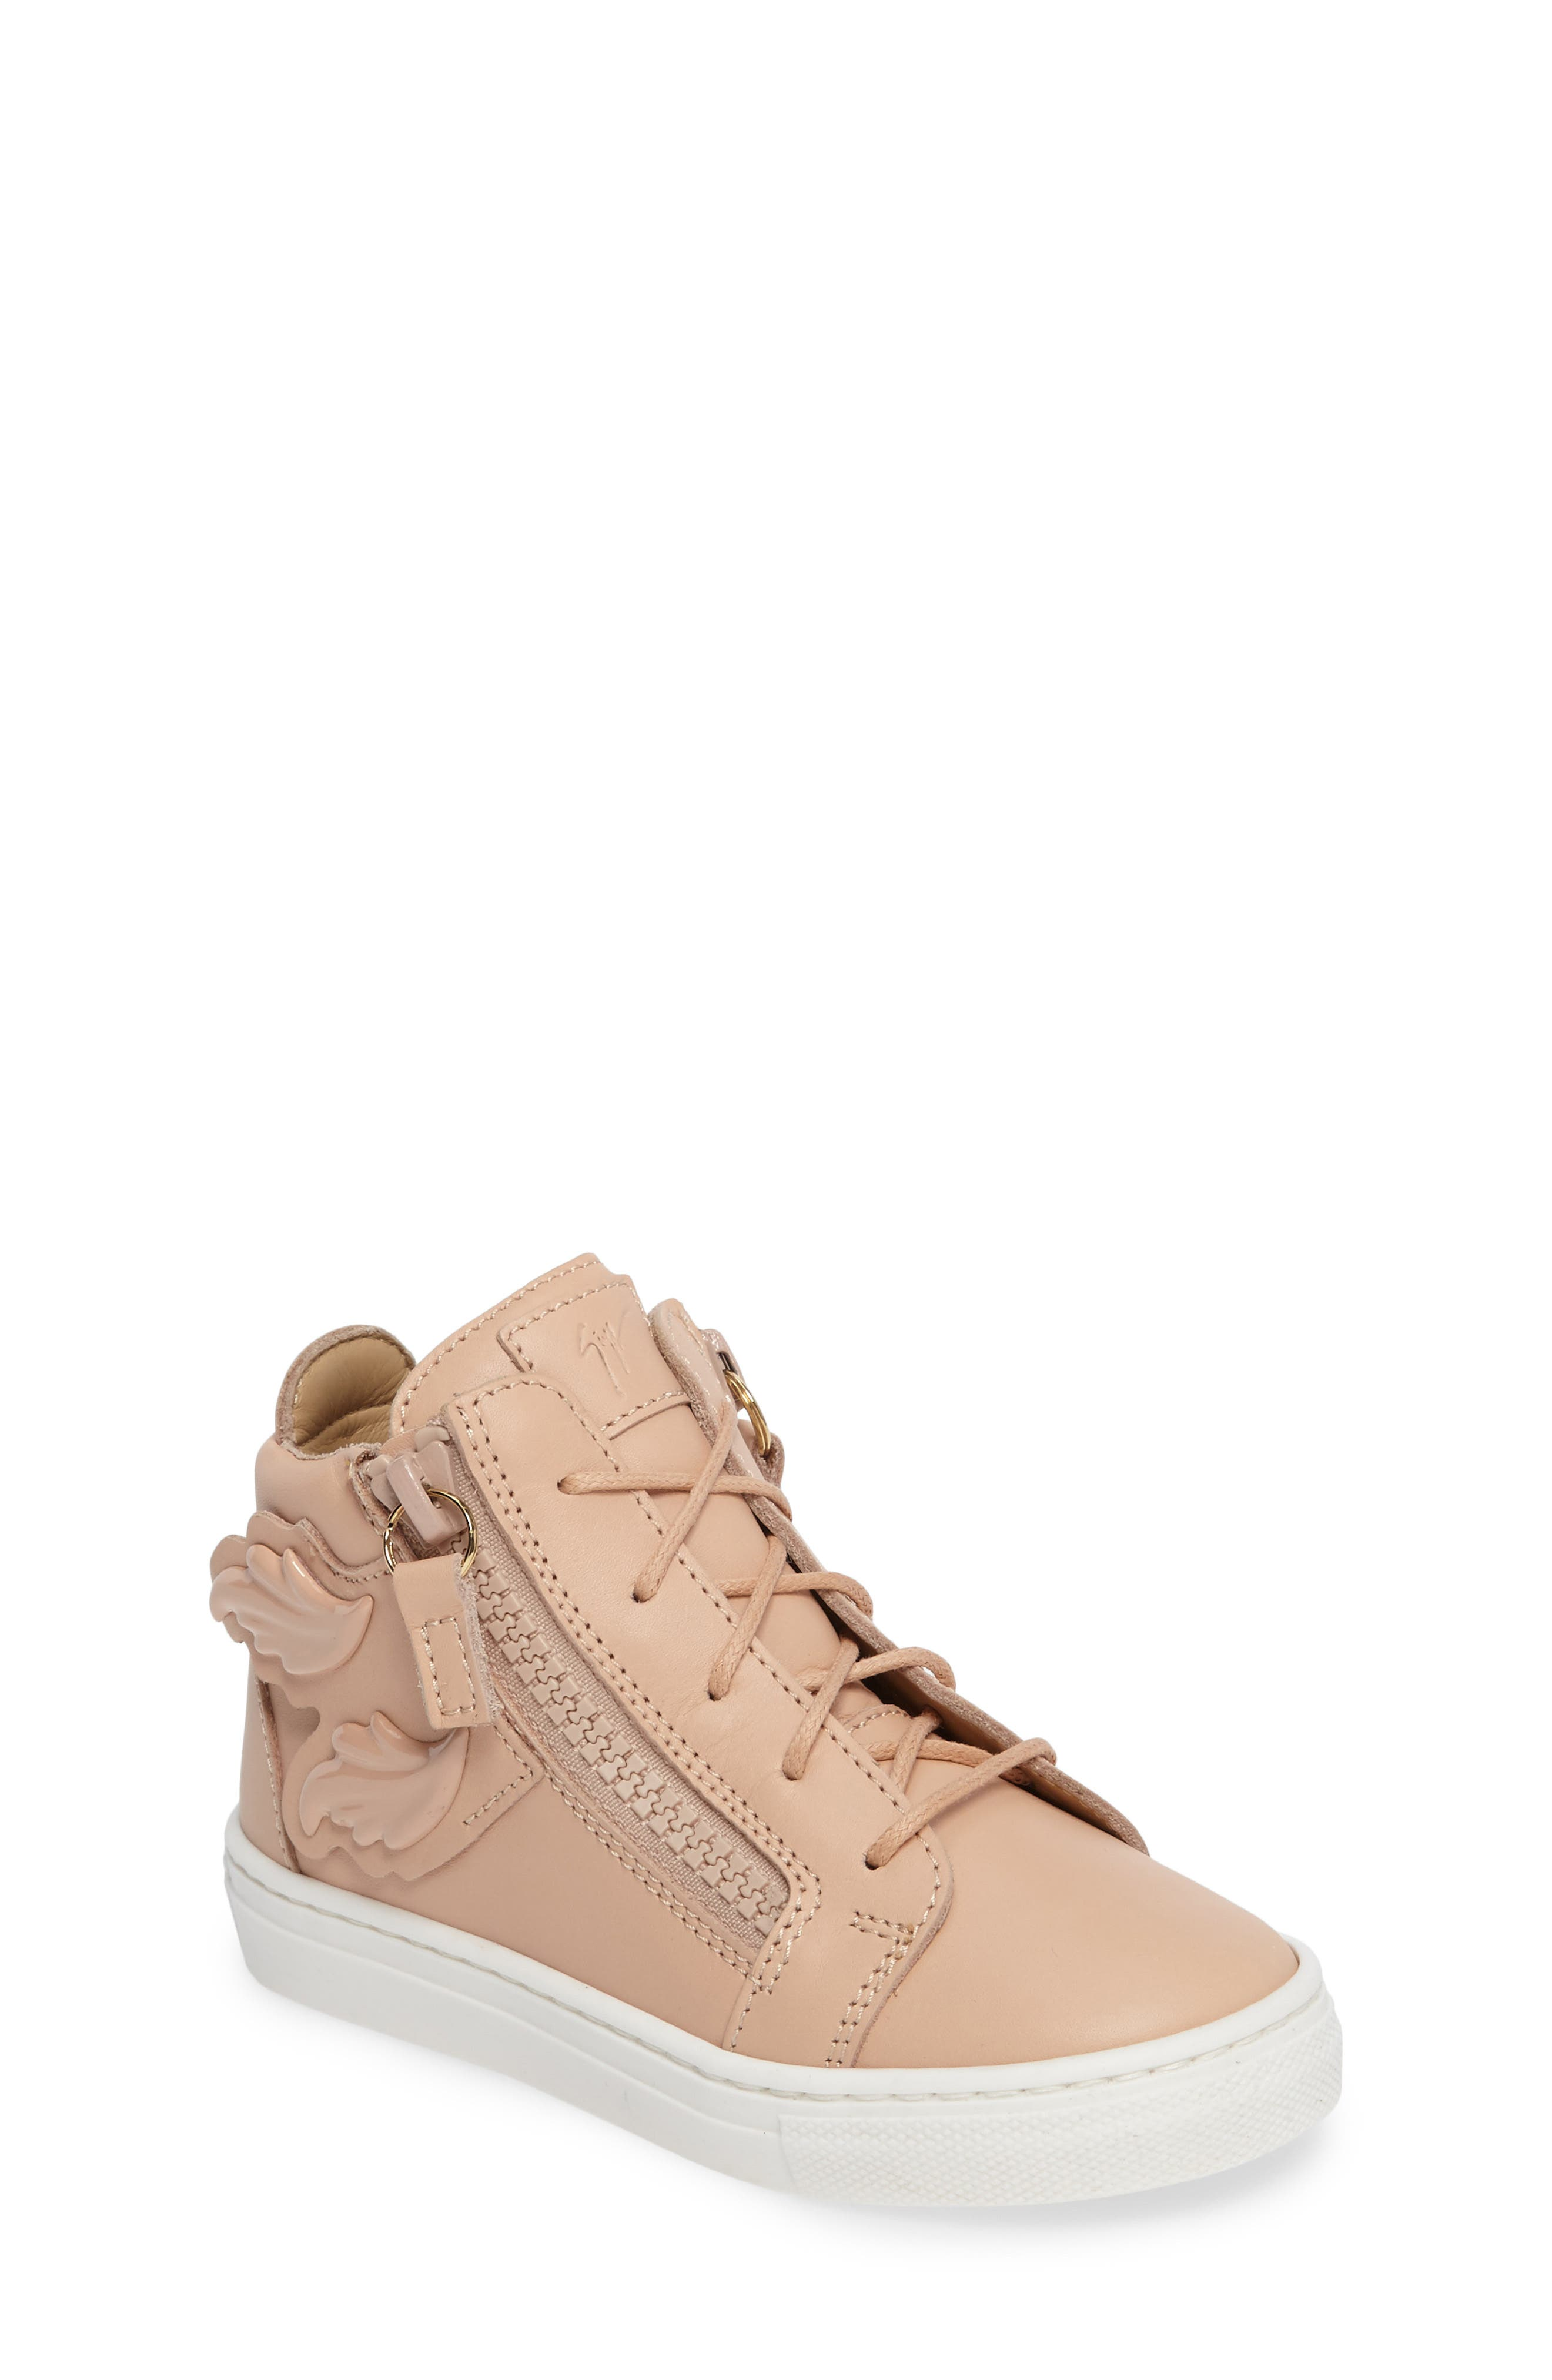 Foglia Embellished Zip Sneaker,                         Main,                         color, Shell Leather